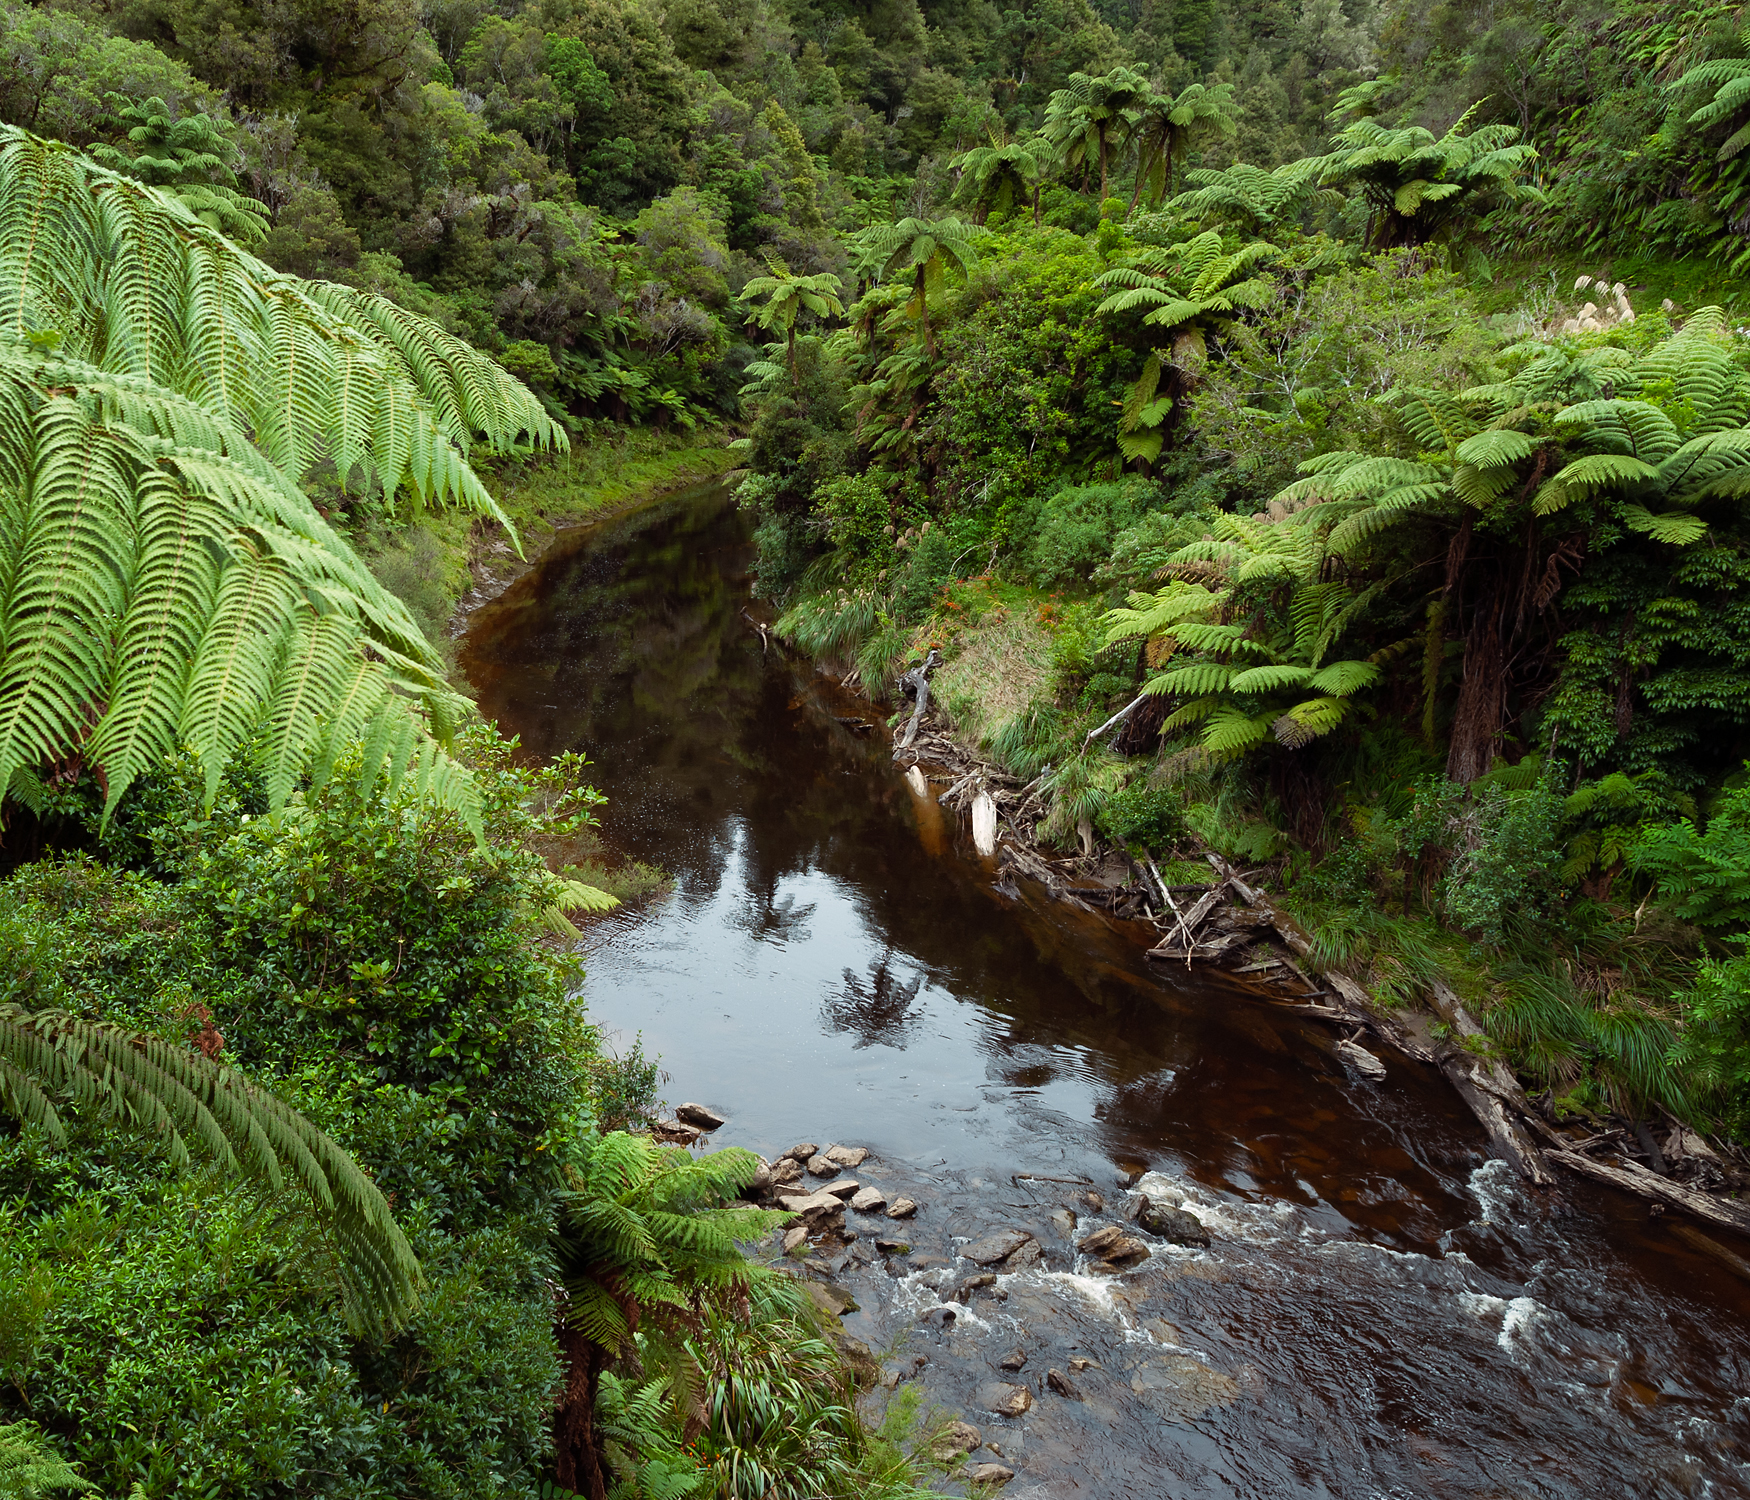 North Island forest